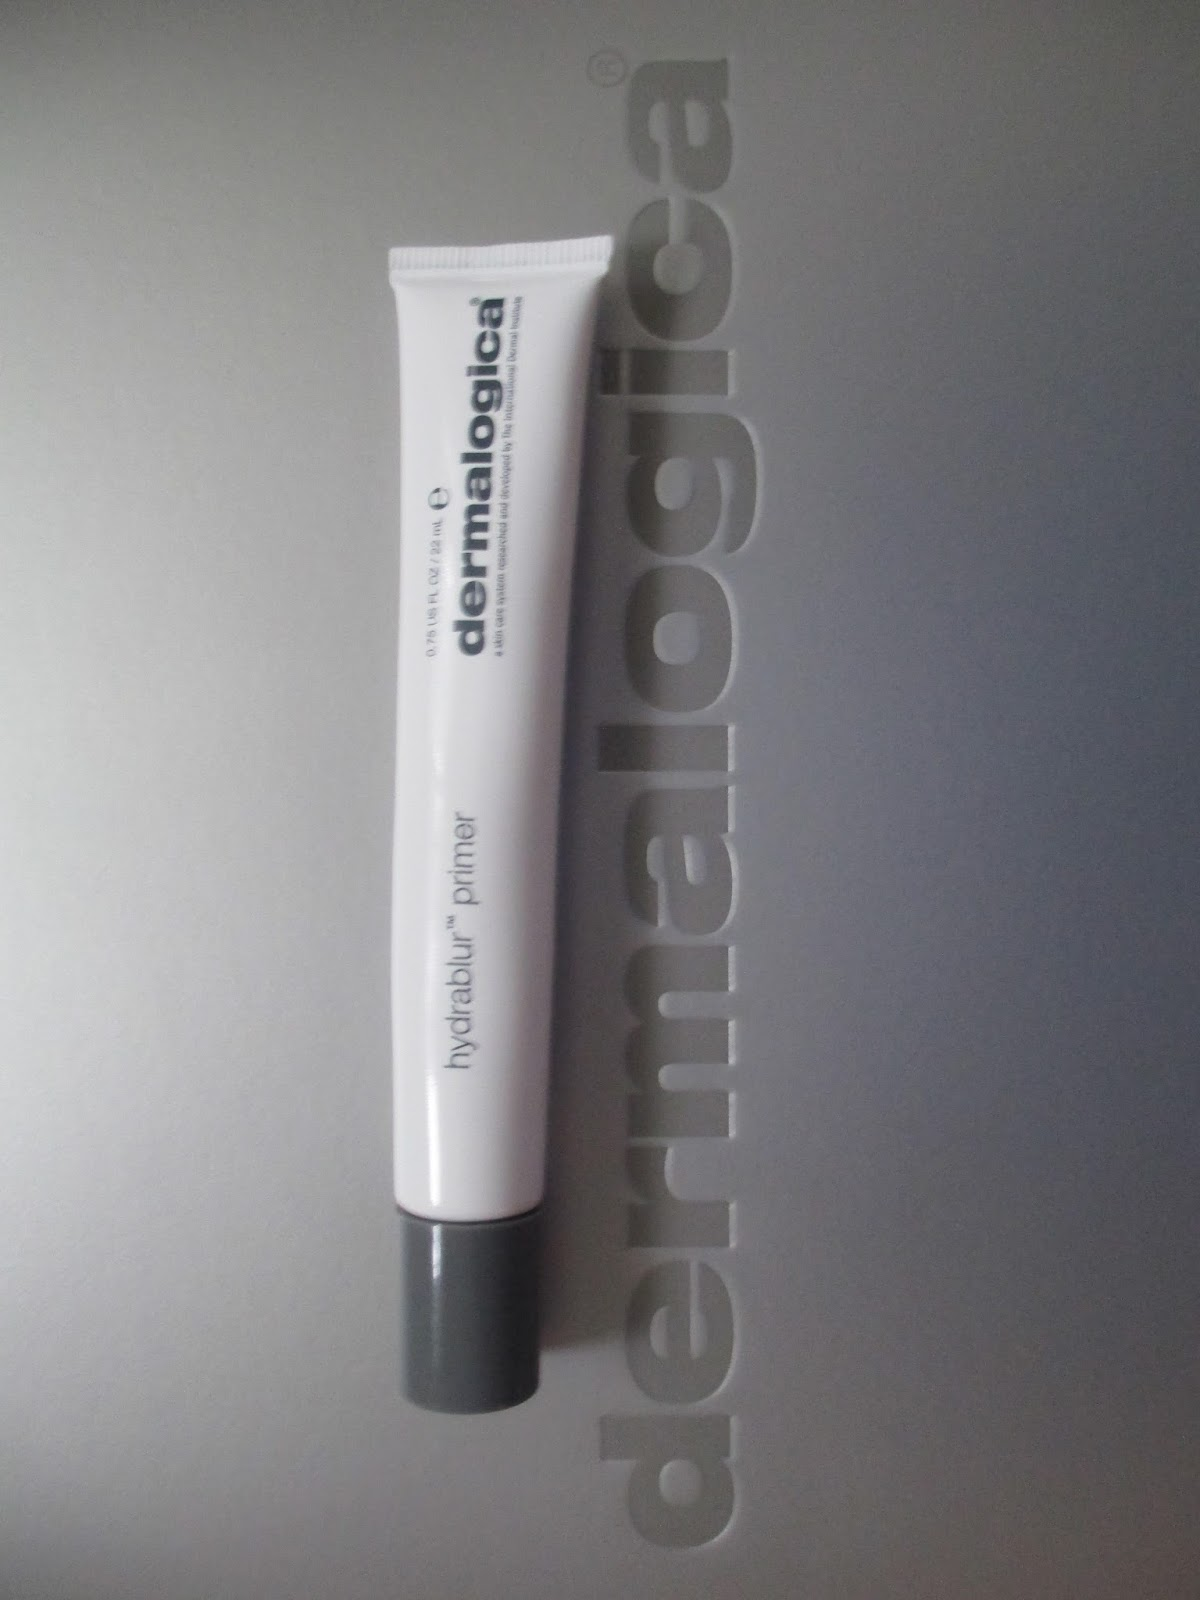 Whats Inside Your Beauty Bag?: dermalogica Hydrablur Primer